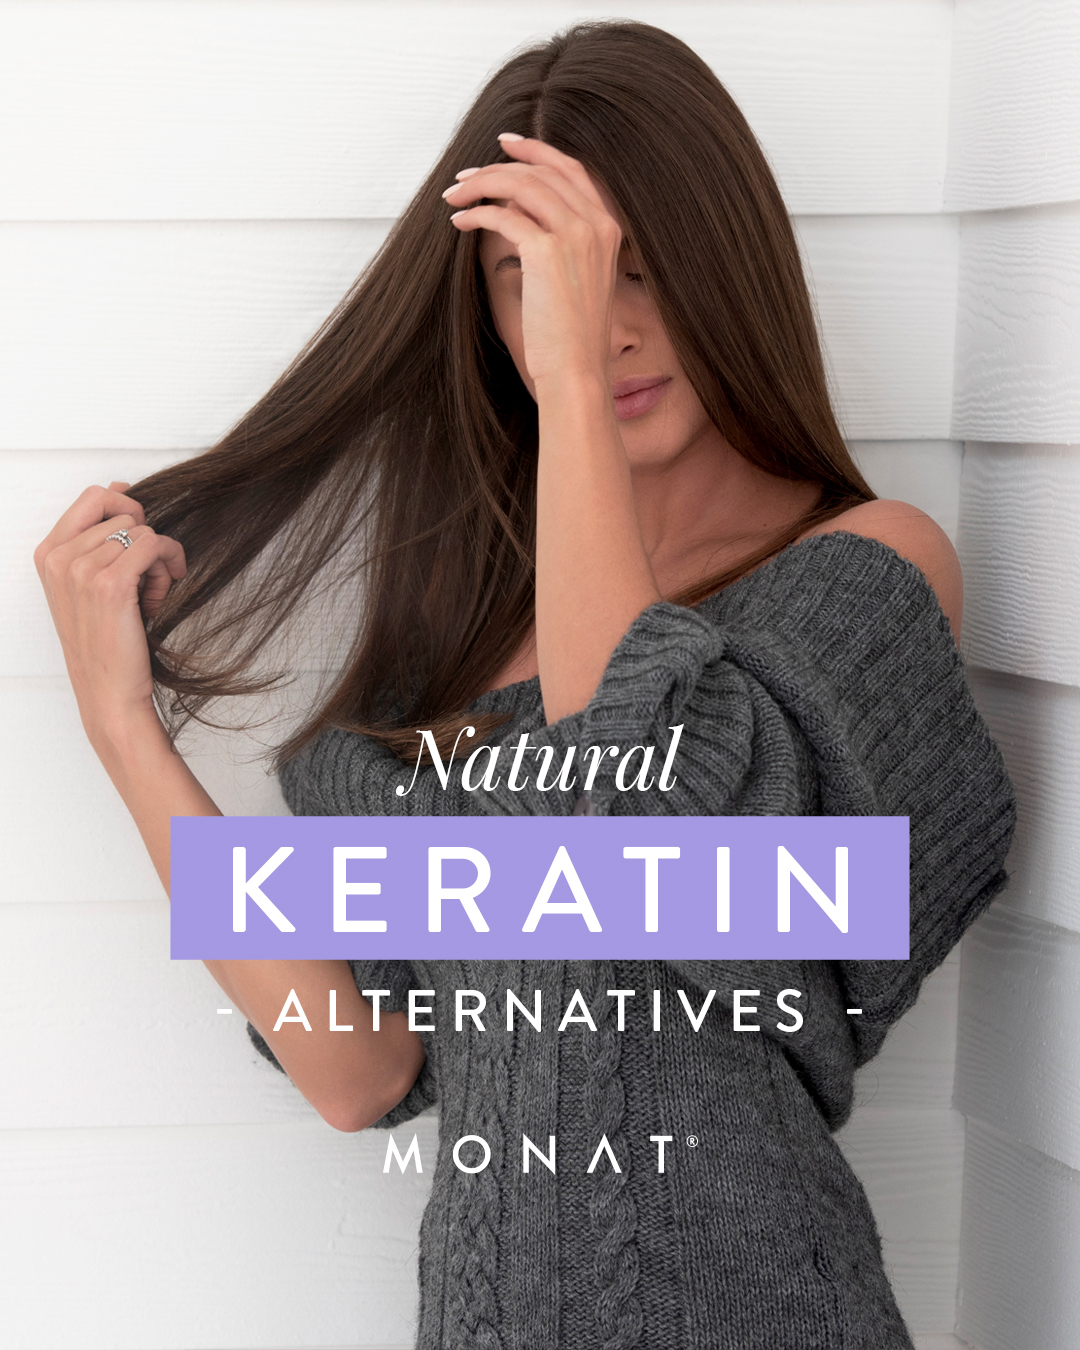 WHAT IS MONAT HAIR